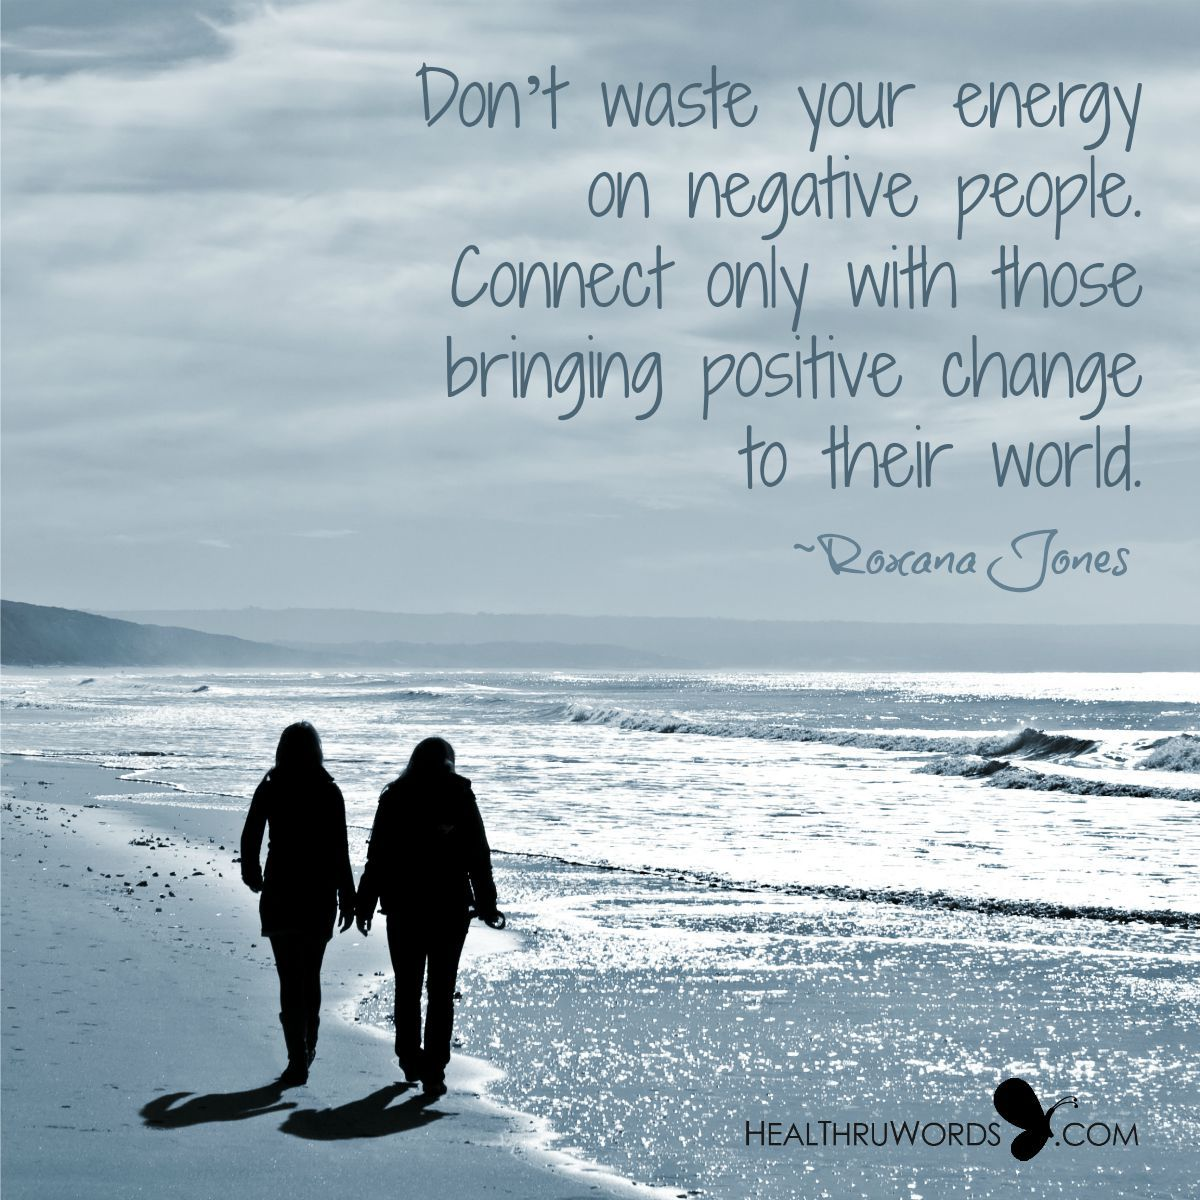 """""""Positive People"""" Don't waste your energy on negative people. Connect only with people bringing positive change to their world.  http://healthruwords.com/inspirational-pictures/positive-people/   Visit me at http://healthruwords.com/  #healthruwords #inspirational #healing #quote #quotes #quoteoftheday"""